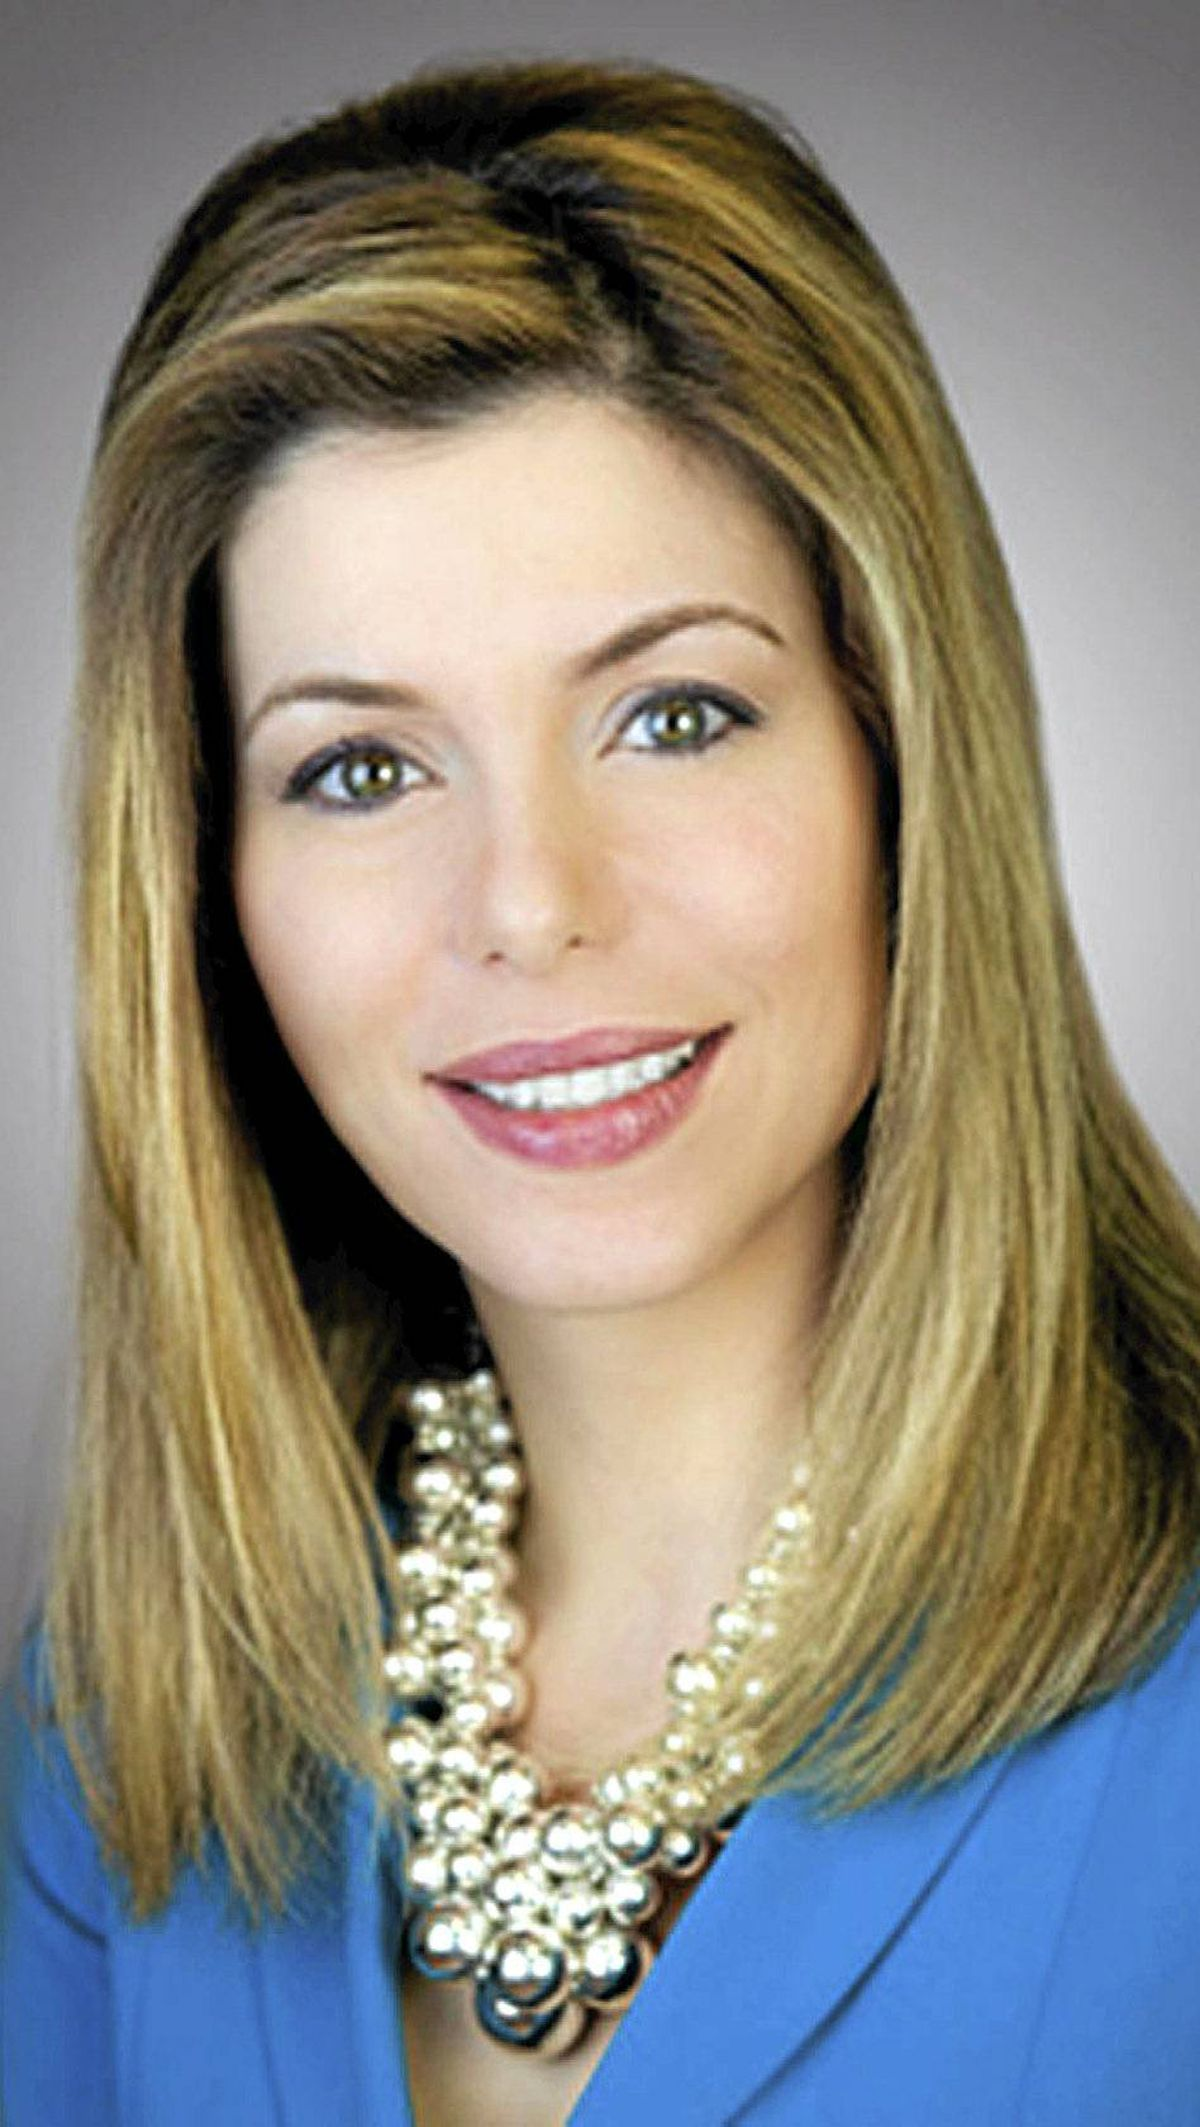 'GENDER BALANCE' EVE ADAMS: The new Mississauga-Brampton South Tory MP and a former Mississauga councillor. Senior Tories mention her as a possibility and former colleagues on Mississauga's council call her extremely tenacious.